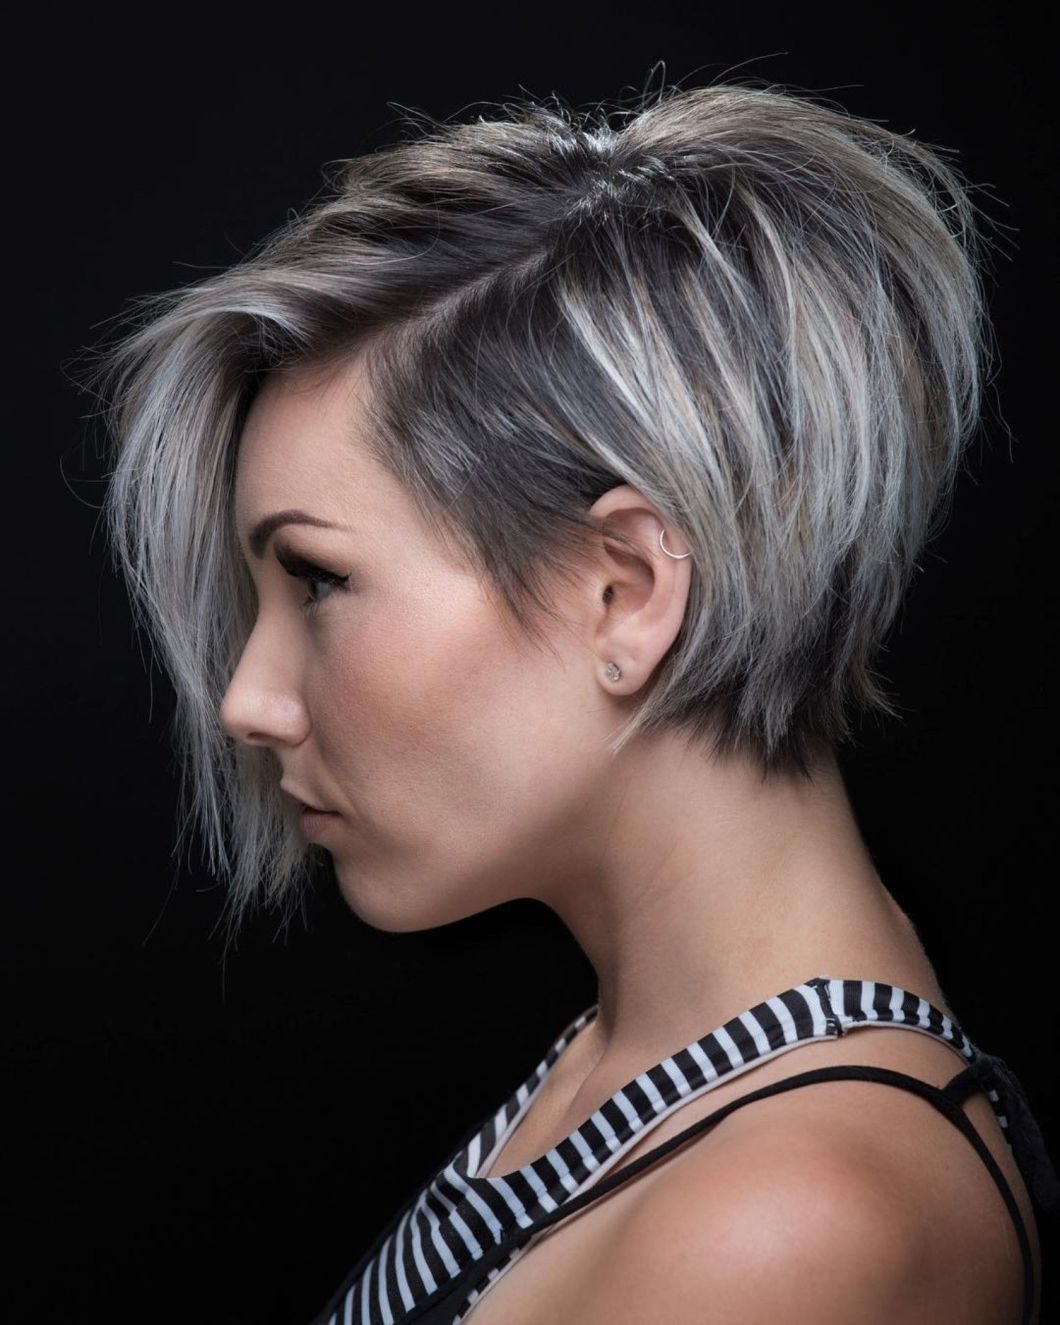 100 mind-blowing short hairstyles for fine hair | hair